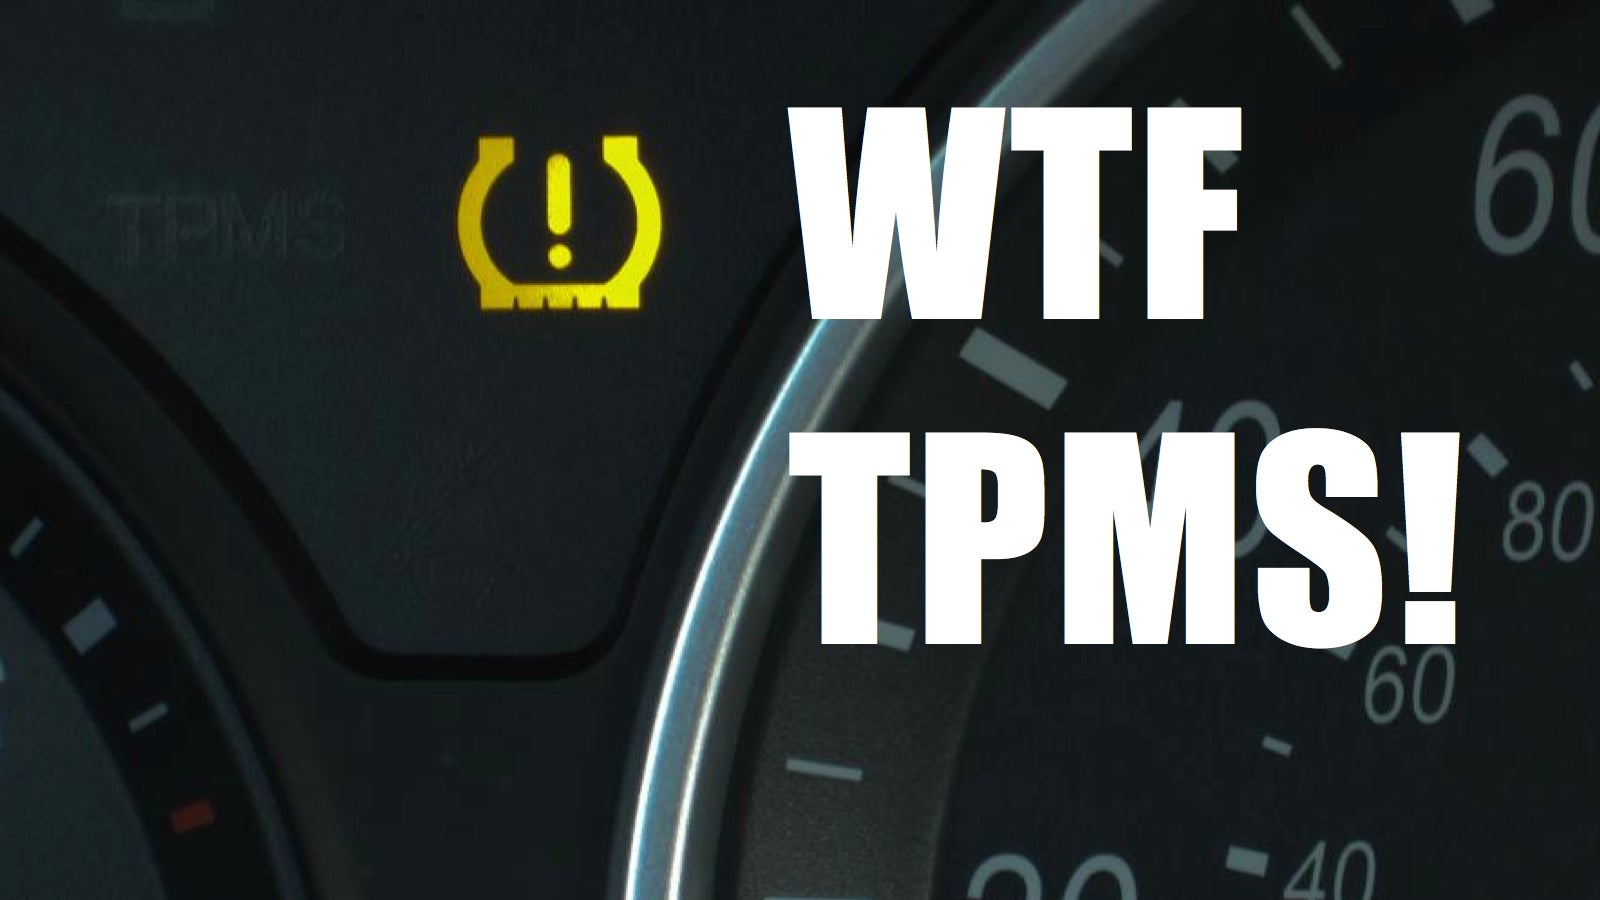 Reset Maintenance Light Toyota Camry >> Why The Tire Pressure Light Is The Most Useless Warning Light